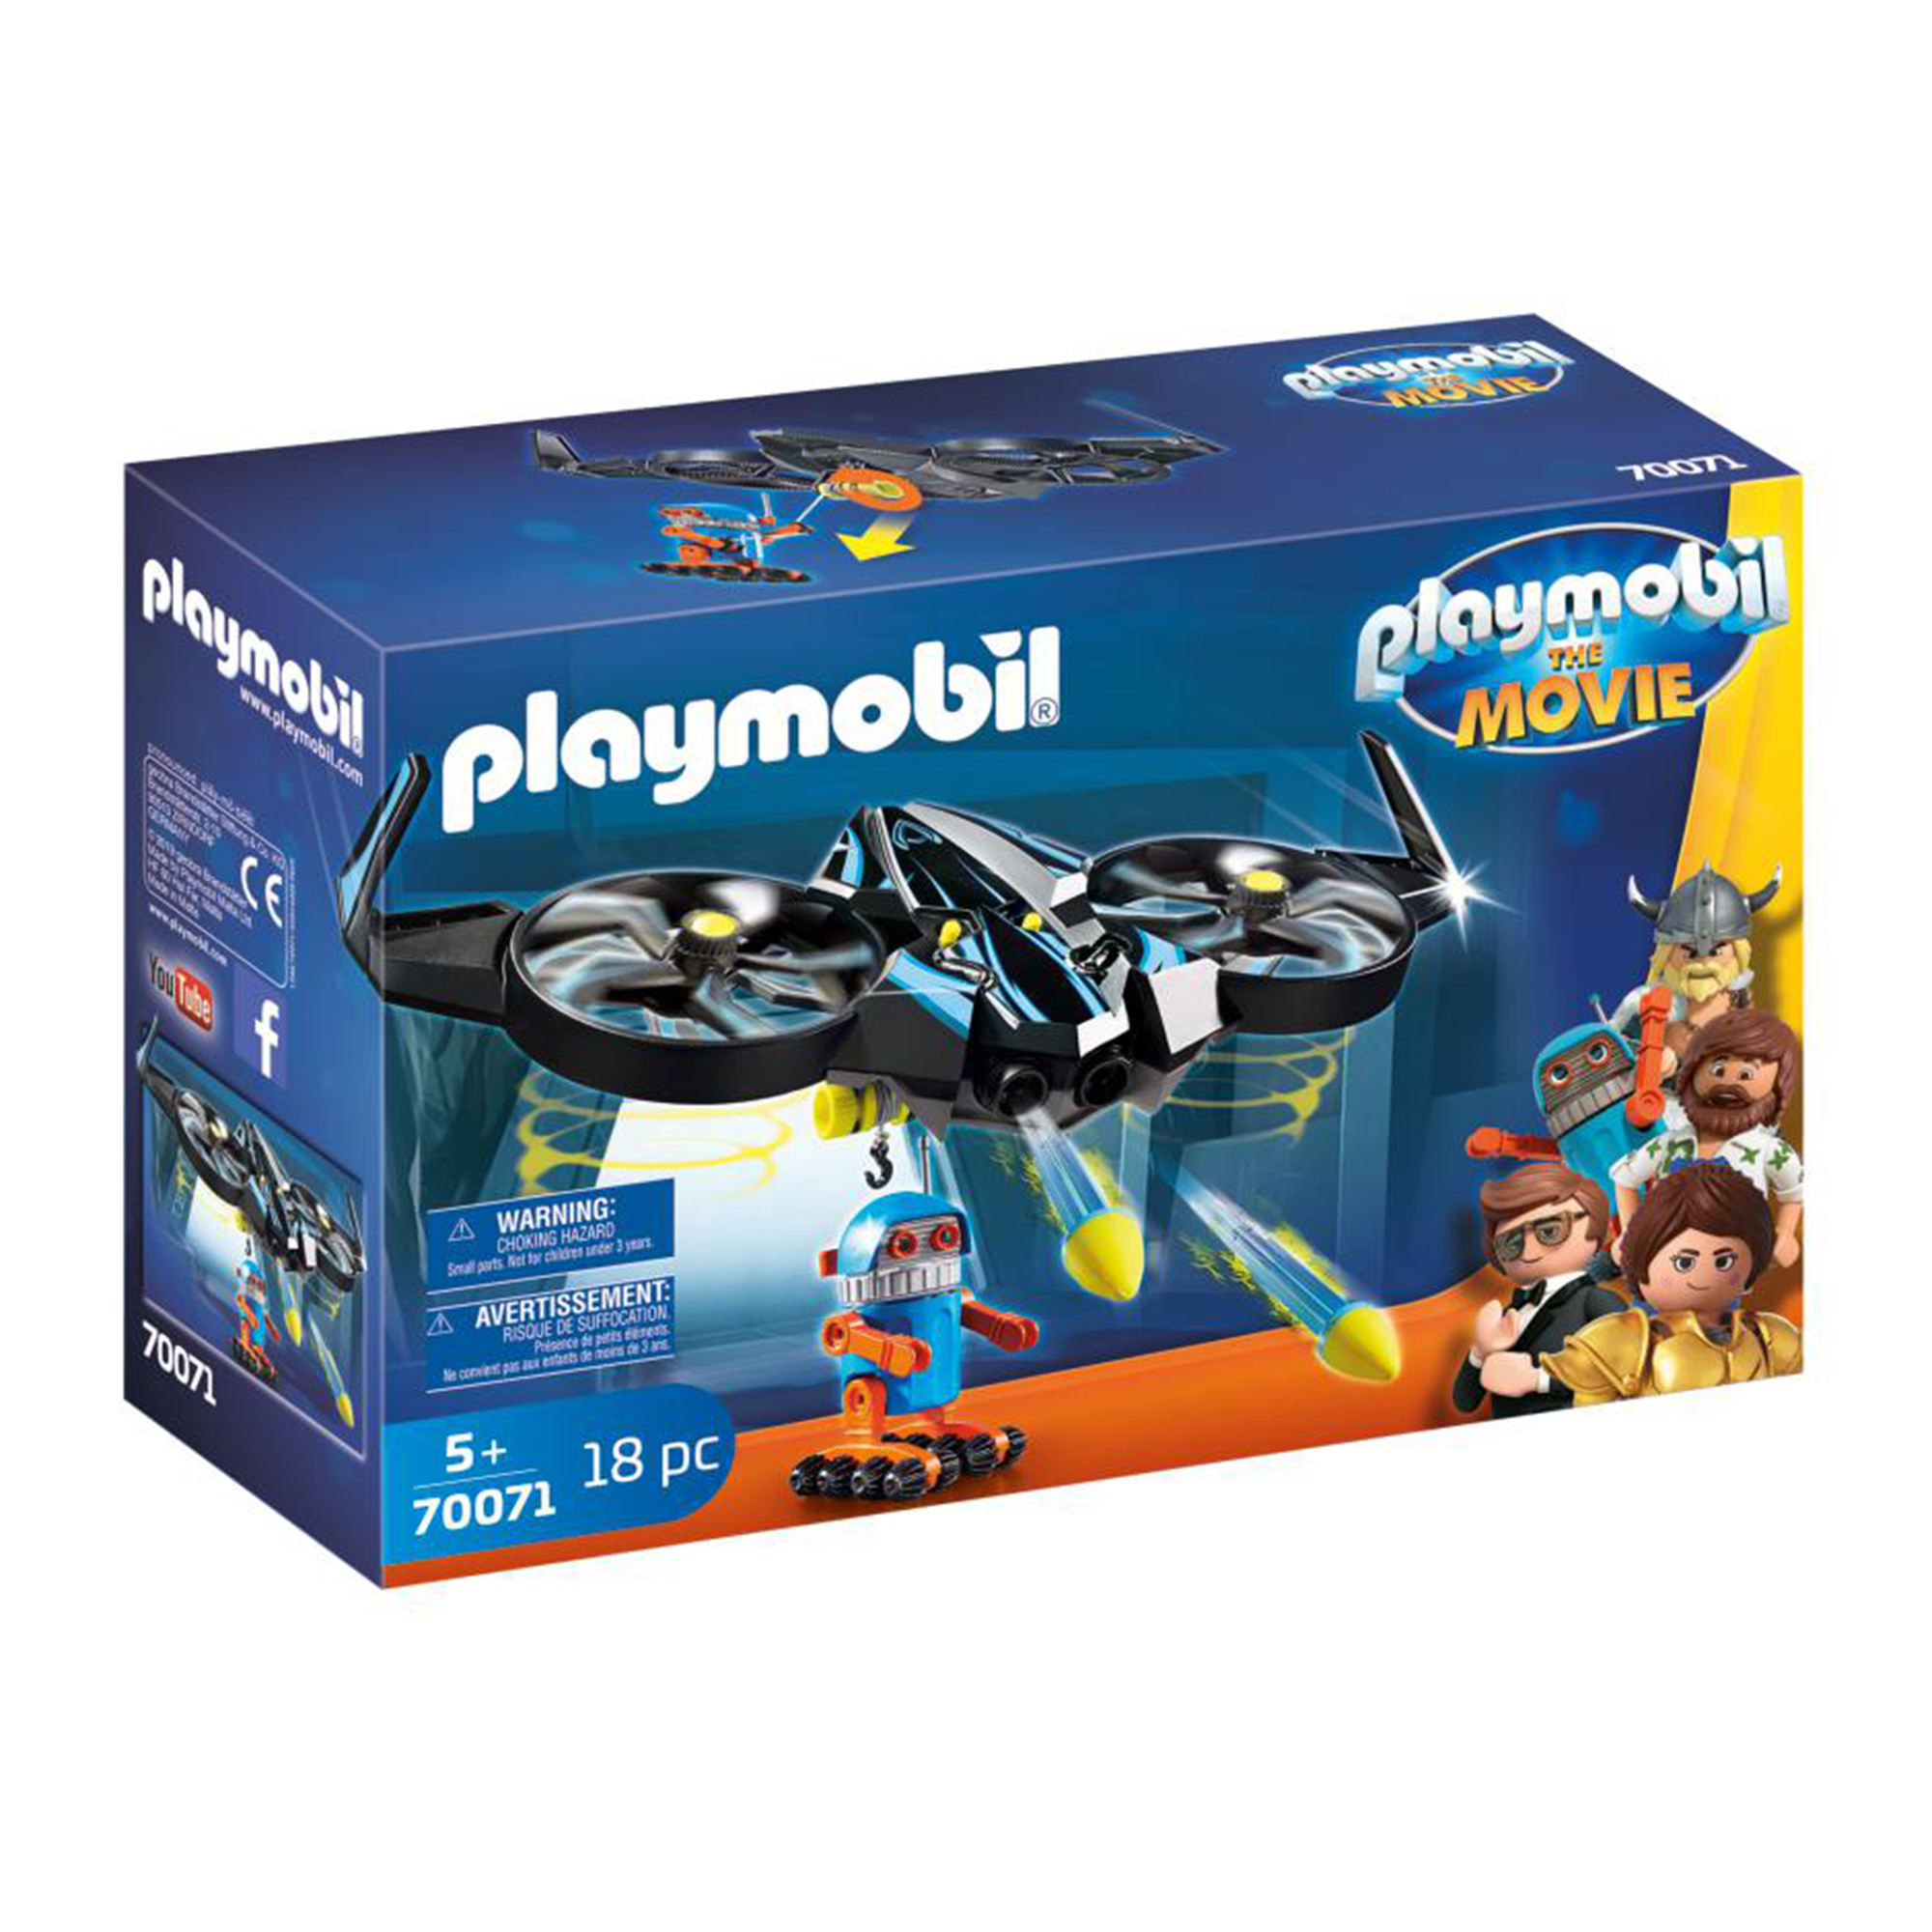 Playmobil 70071 Playmobil: THE MOVIE Robotitron with Drone